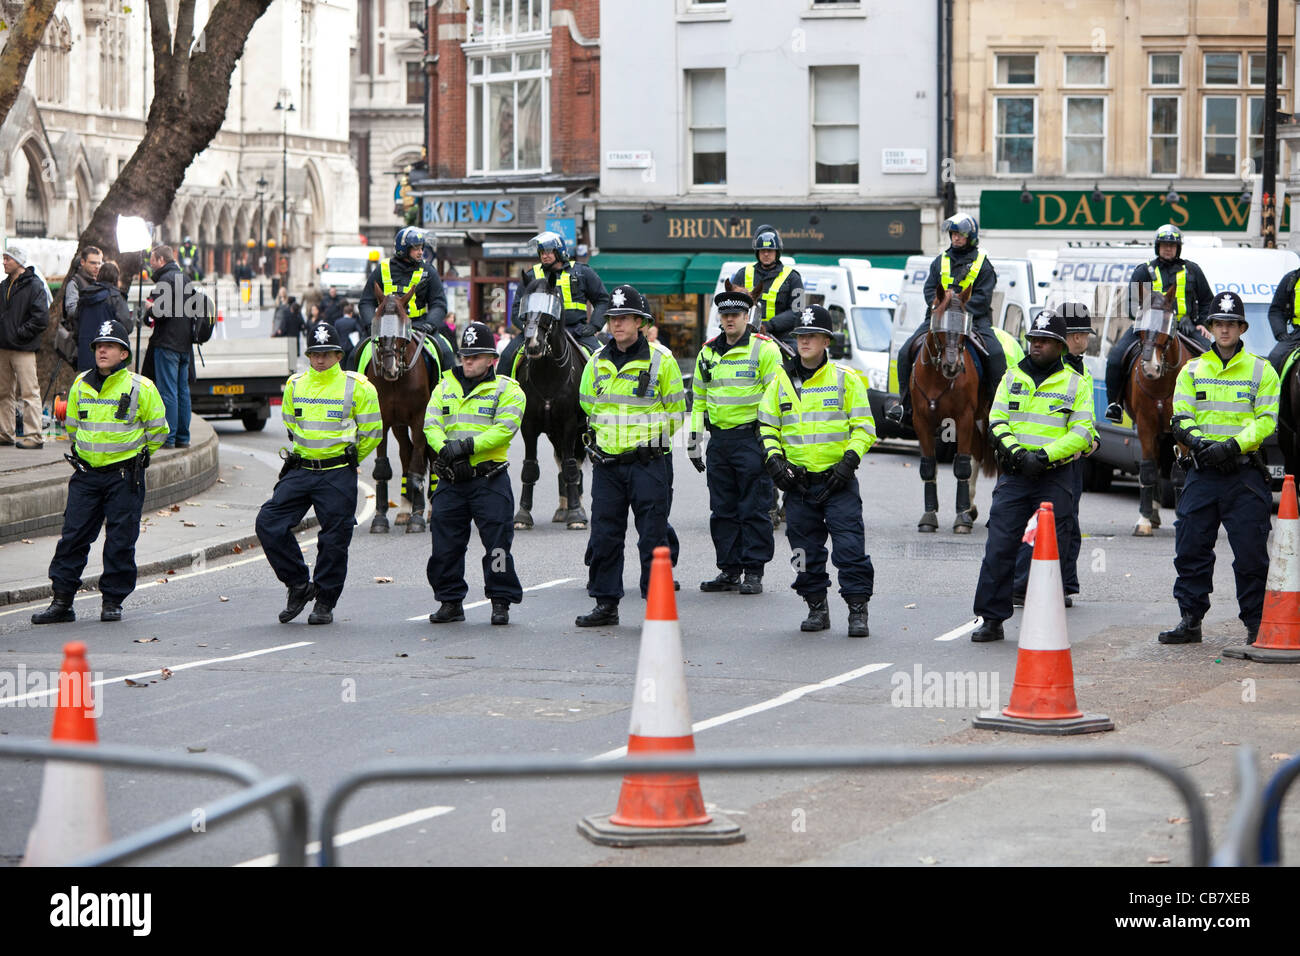 British Police force at Public sector strike (the unions), London, England, 2011, UK. - Stock Image